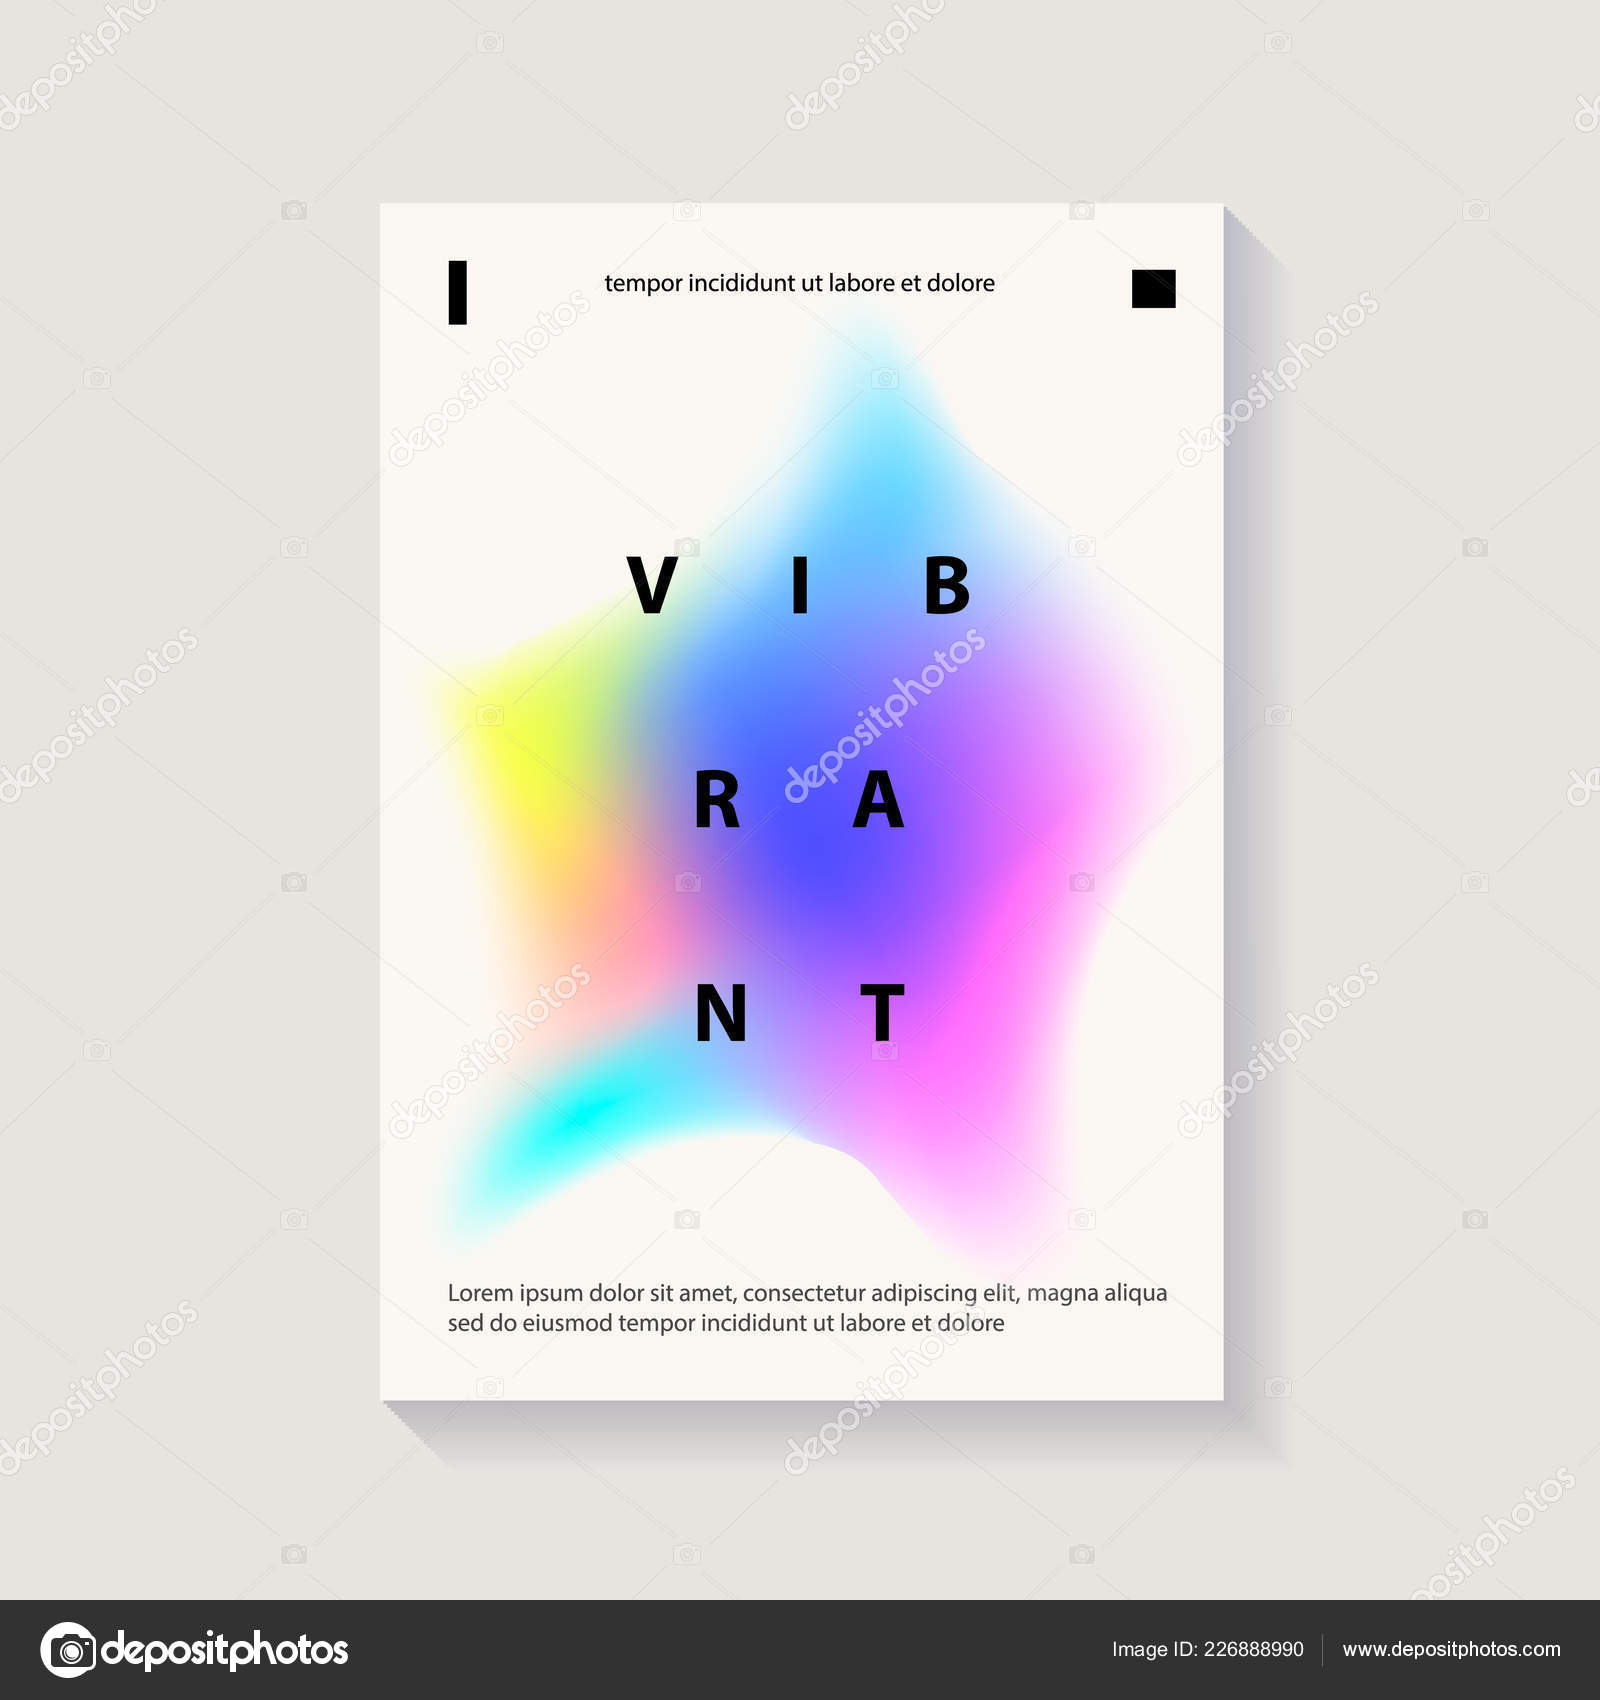 creative cover or poster design template abstract shapes with vibrant gradients modern style abstraction background vibrant gradient on white background